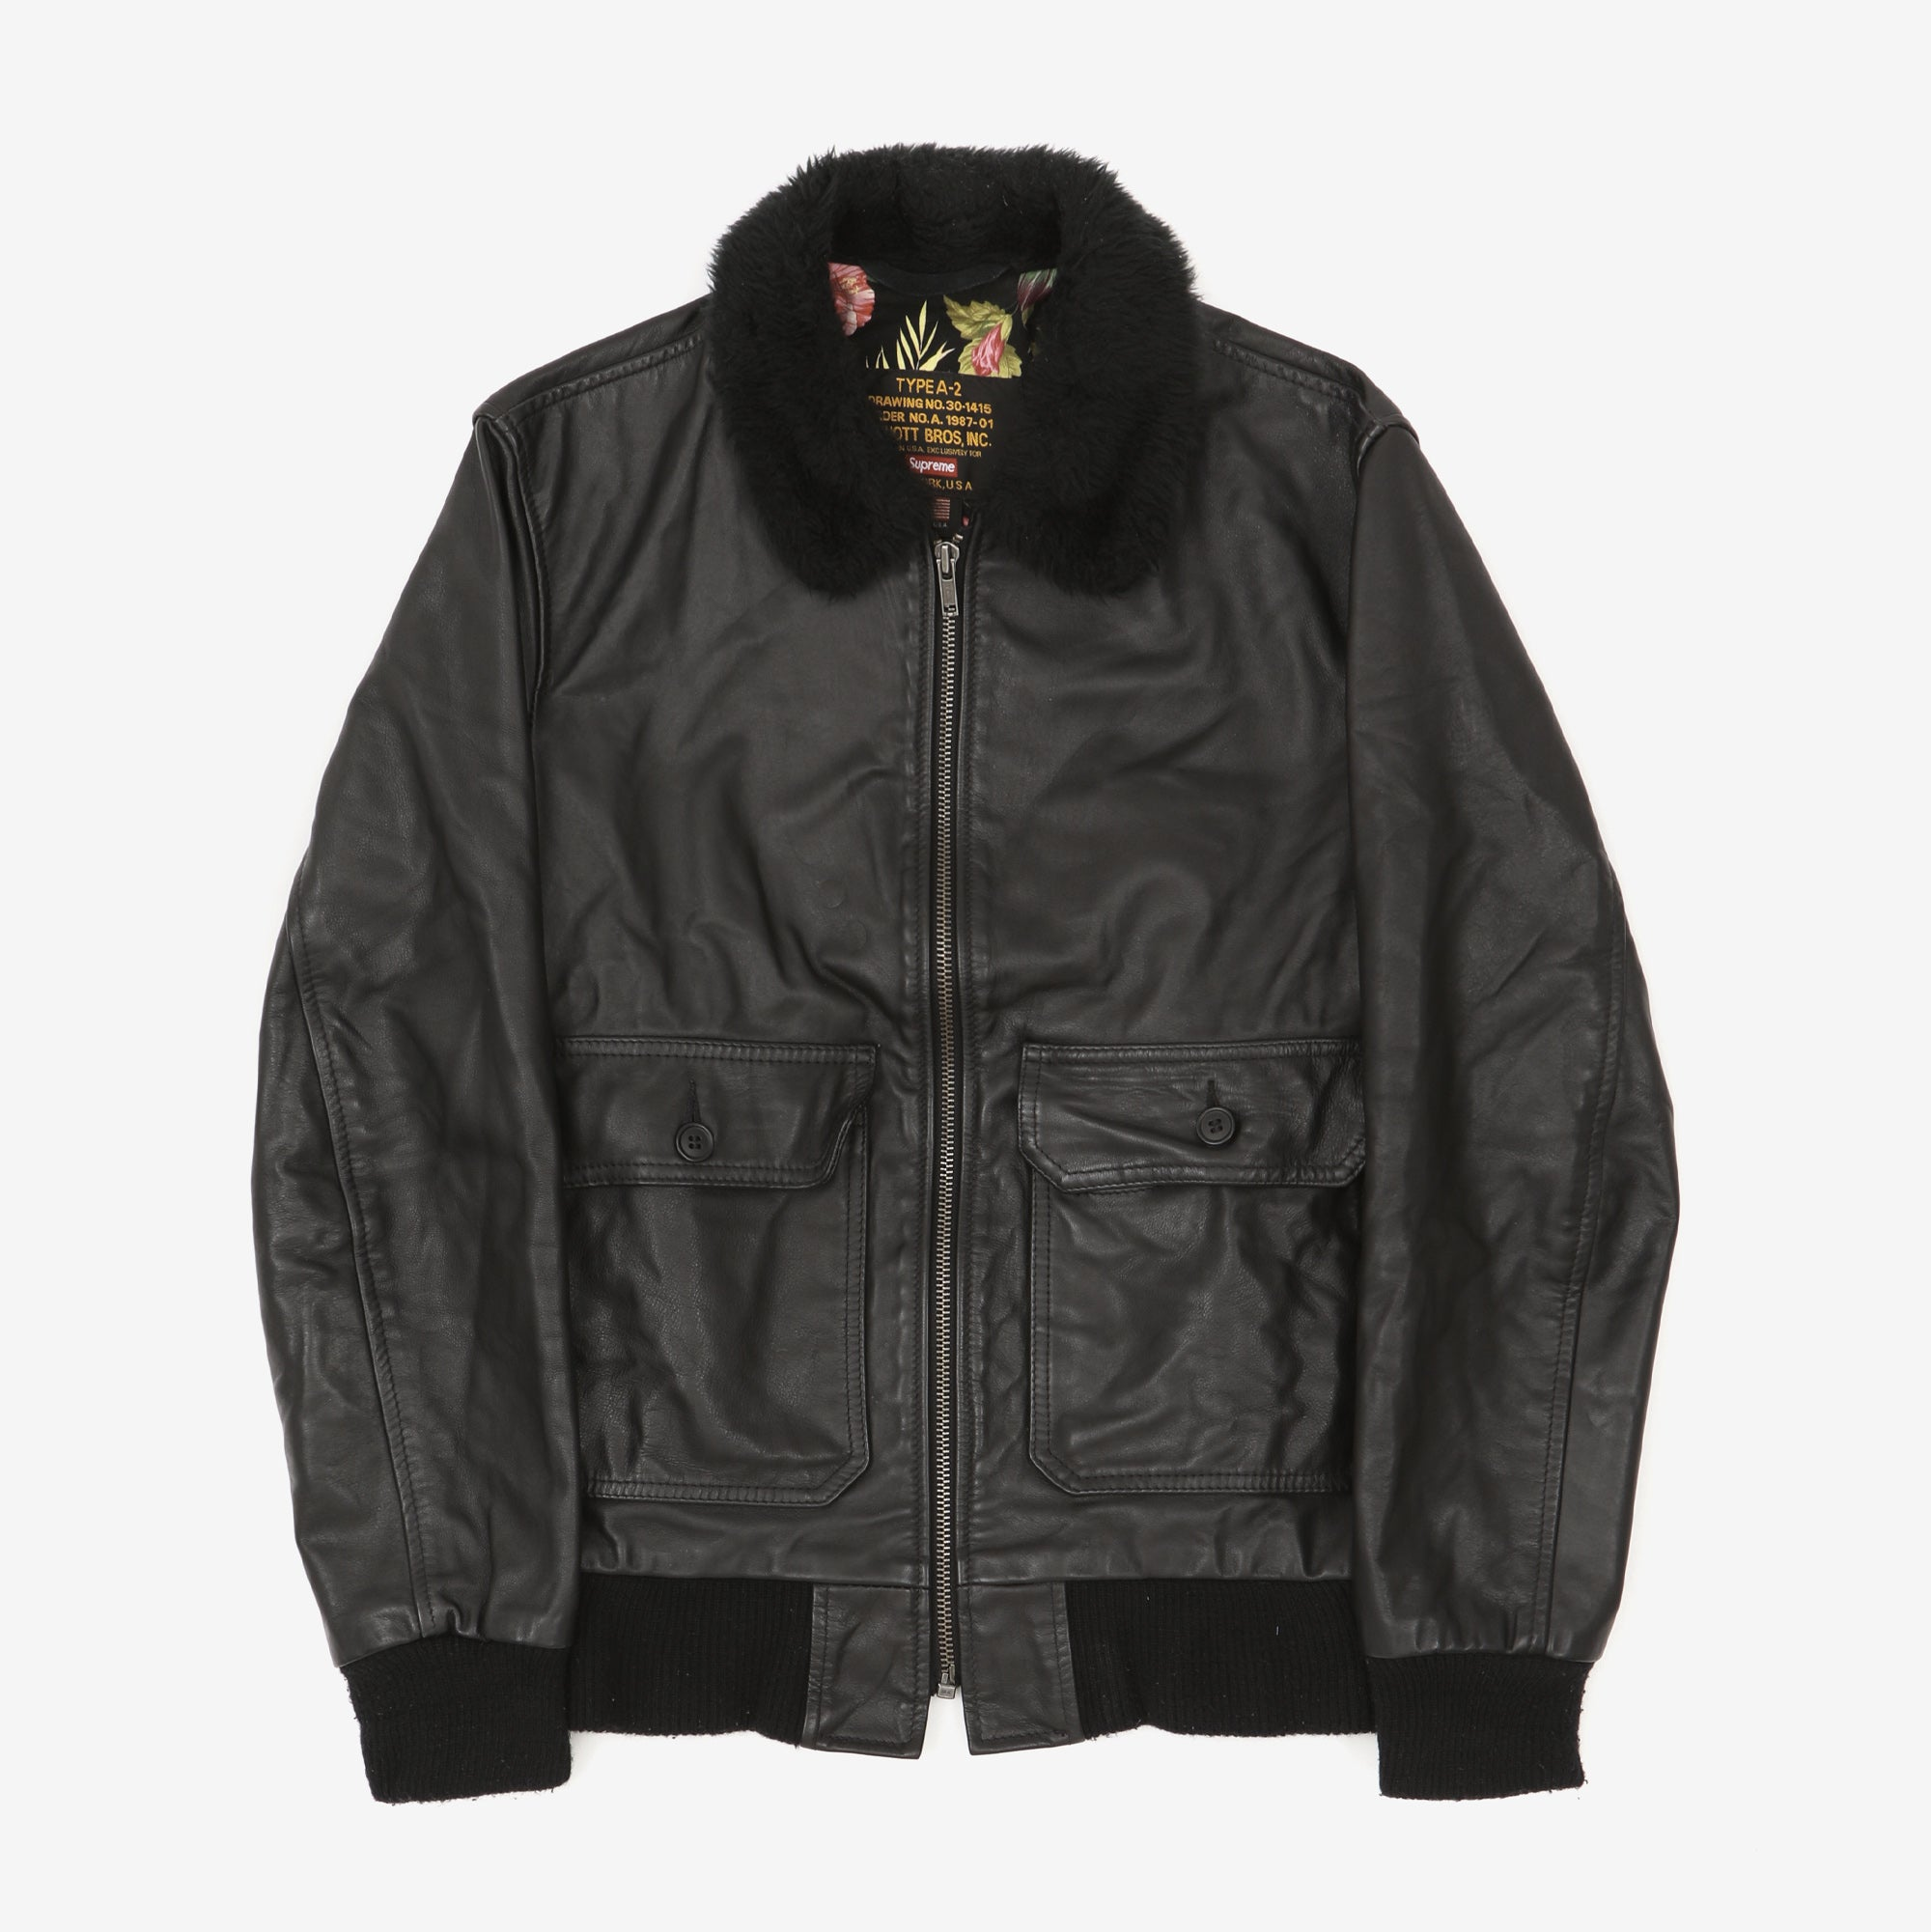 Schott x Supreme Type A-2 Leather Jacket